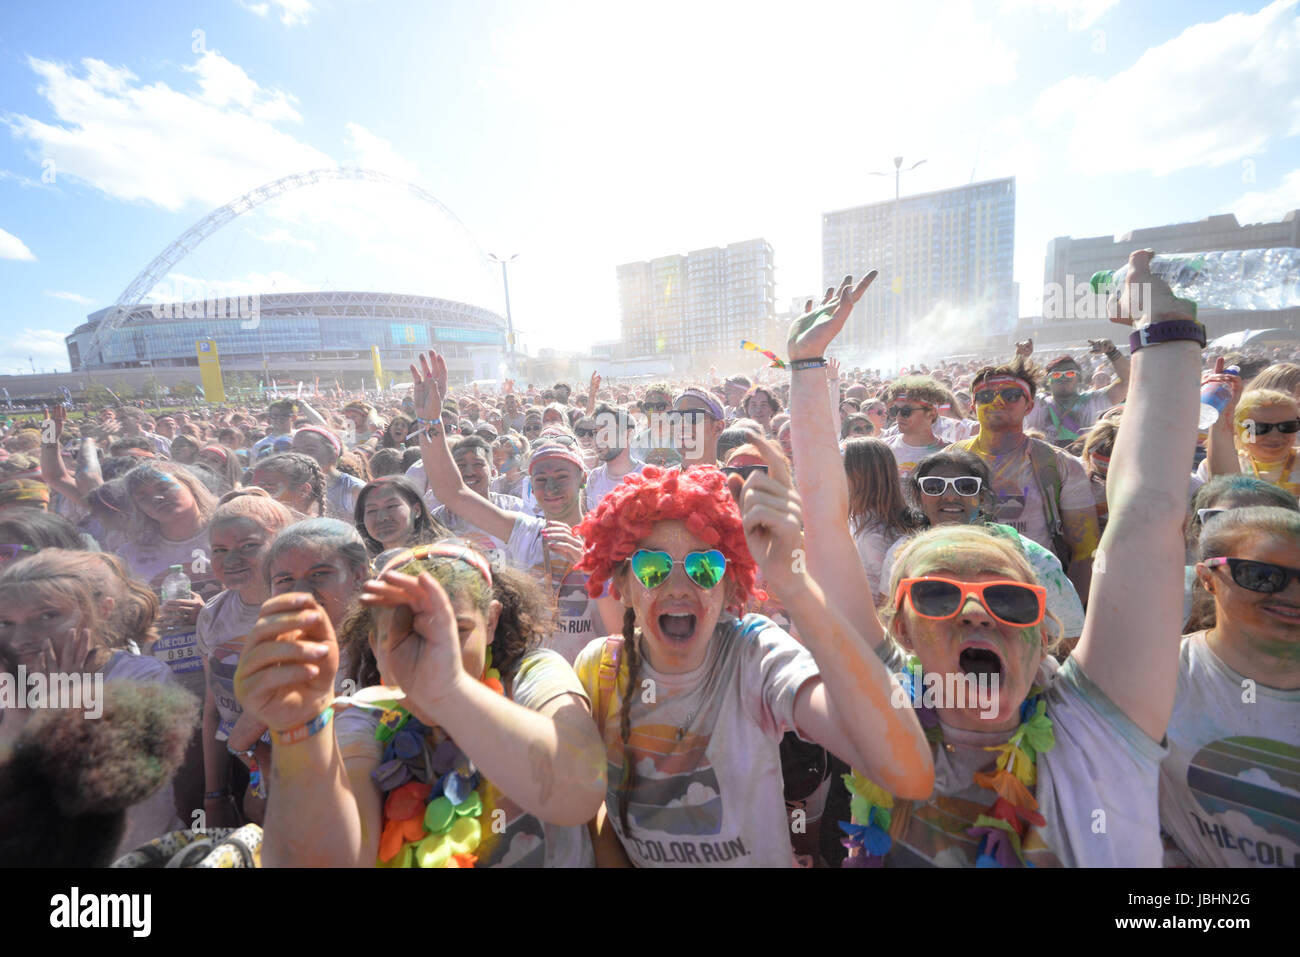 the-color-run-london-wembley-park-2017-colour-run-space-for-copy-JBHN2G.jpg